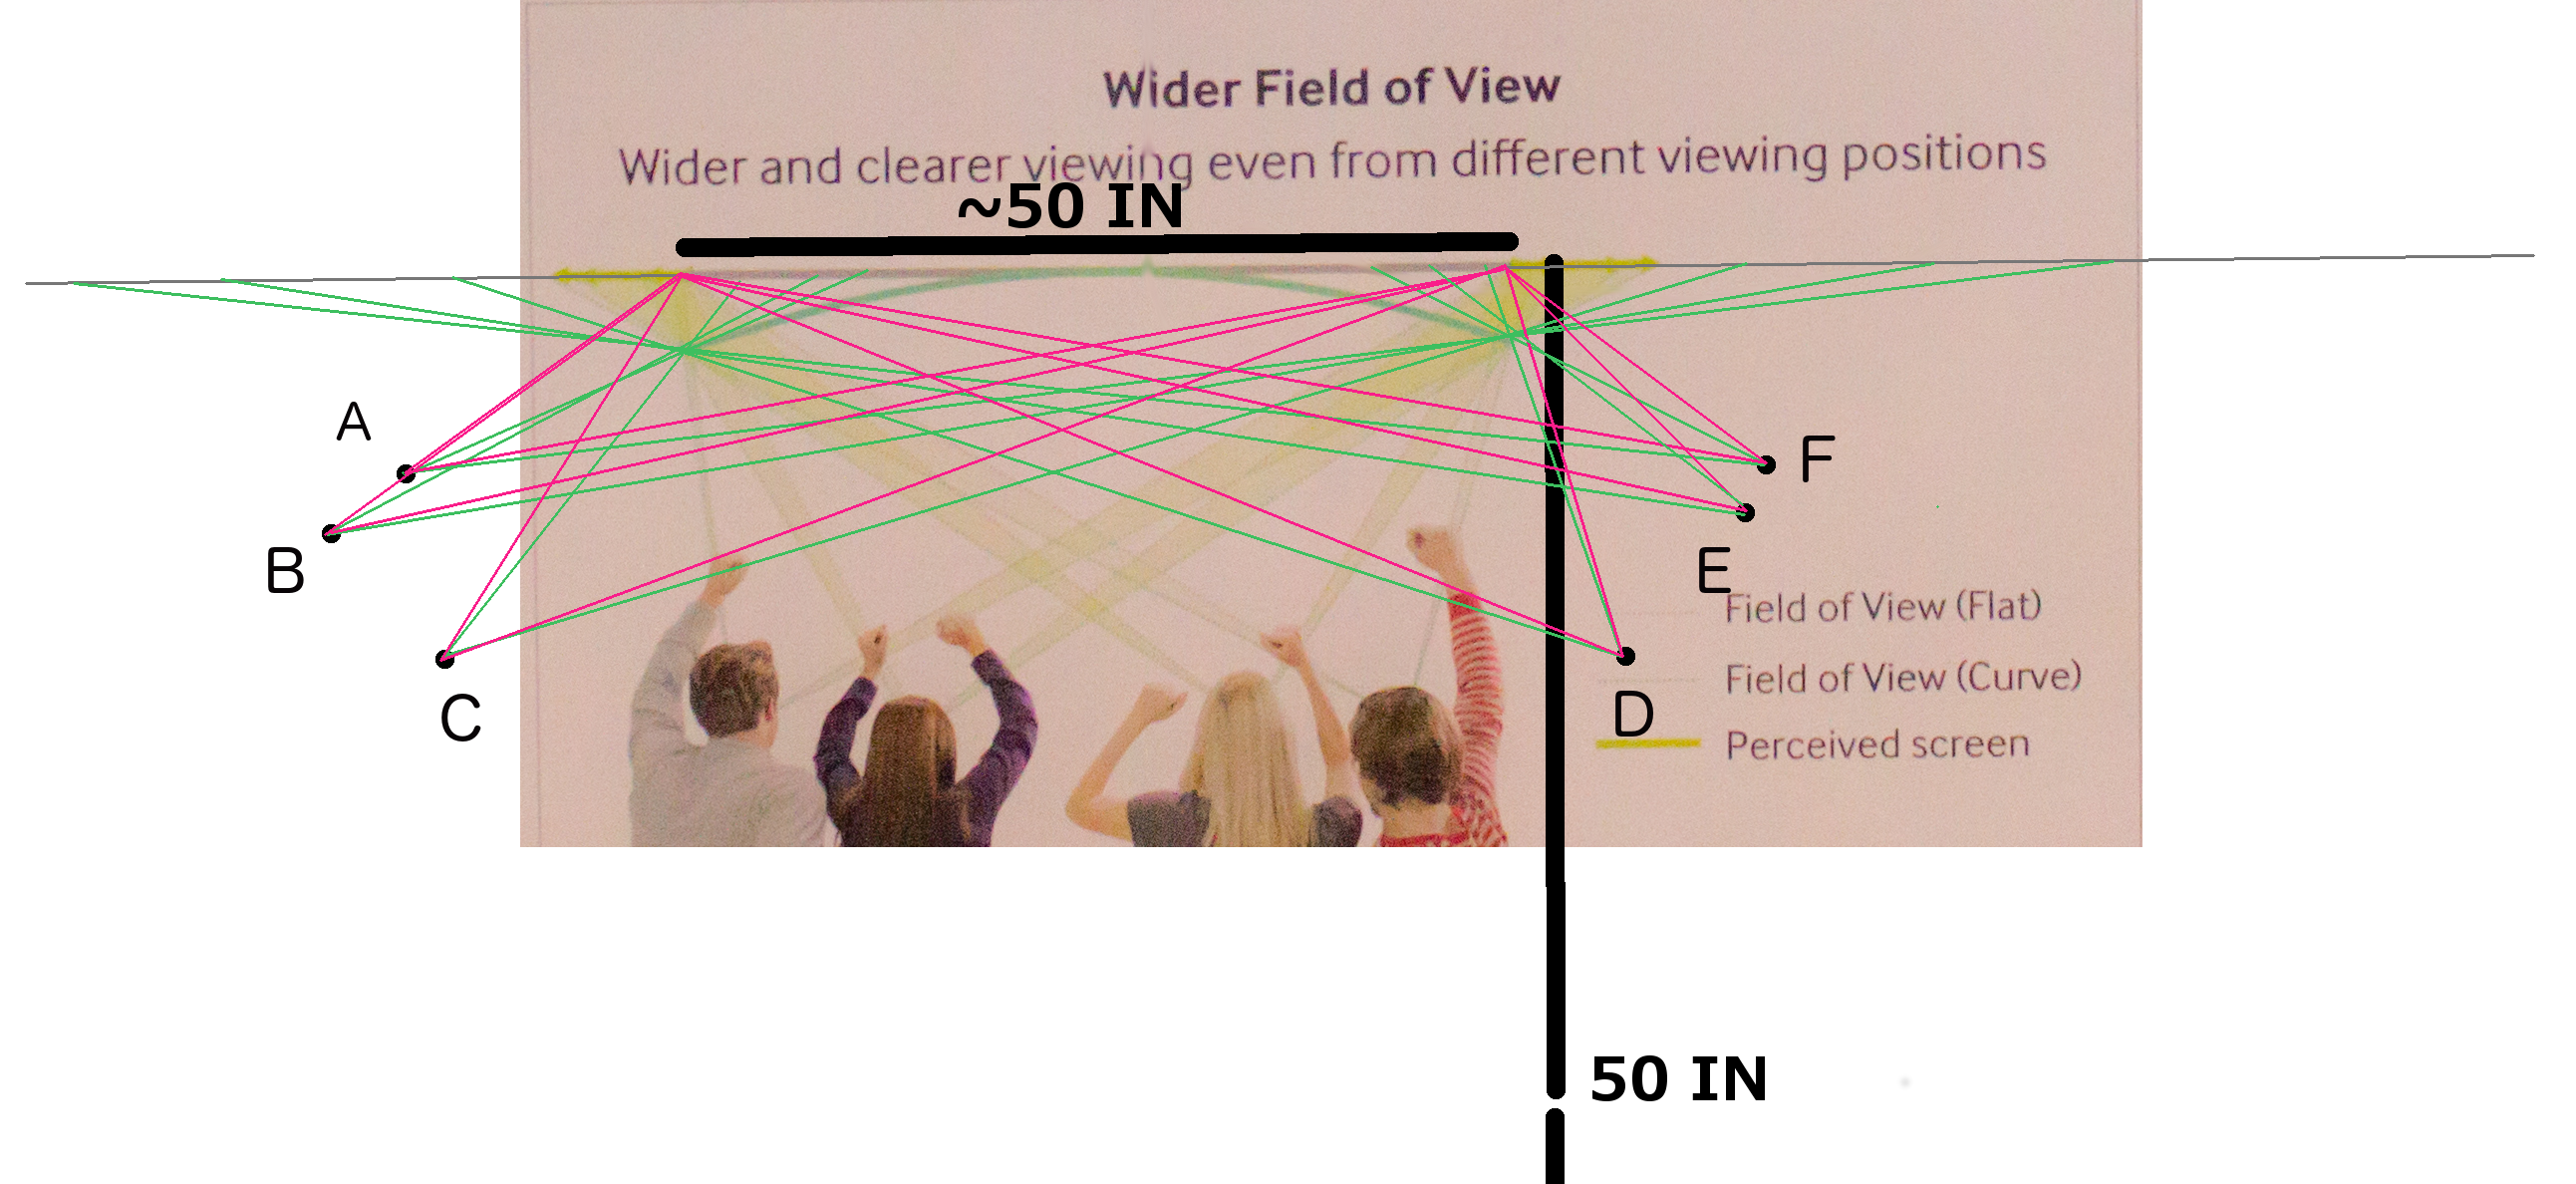 If you use Samsung's diagram trick and scooch people closer to the screen, the field-of-view problems with off-center viewing are a little easier to see. A, B, E, and F are cut off from their sides of the screen.